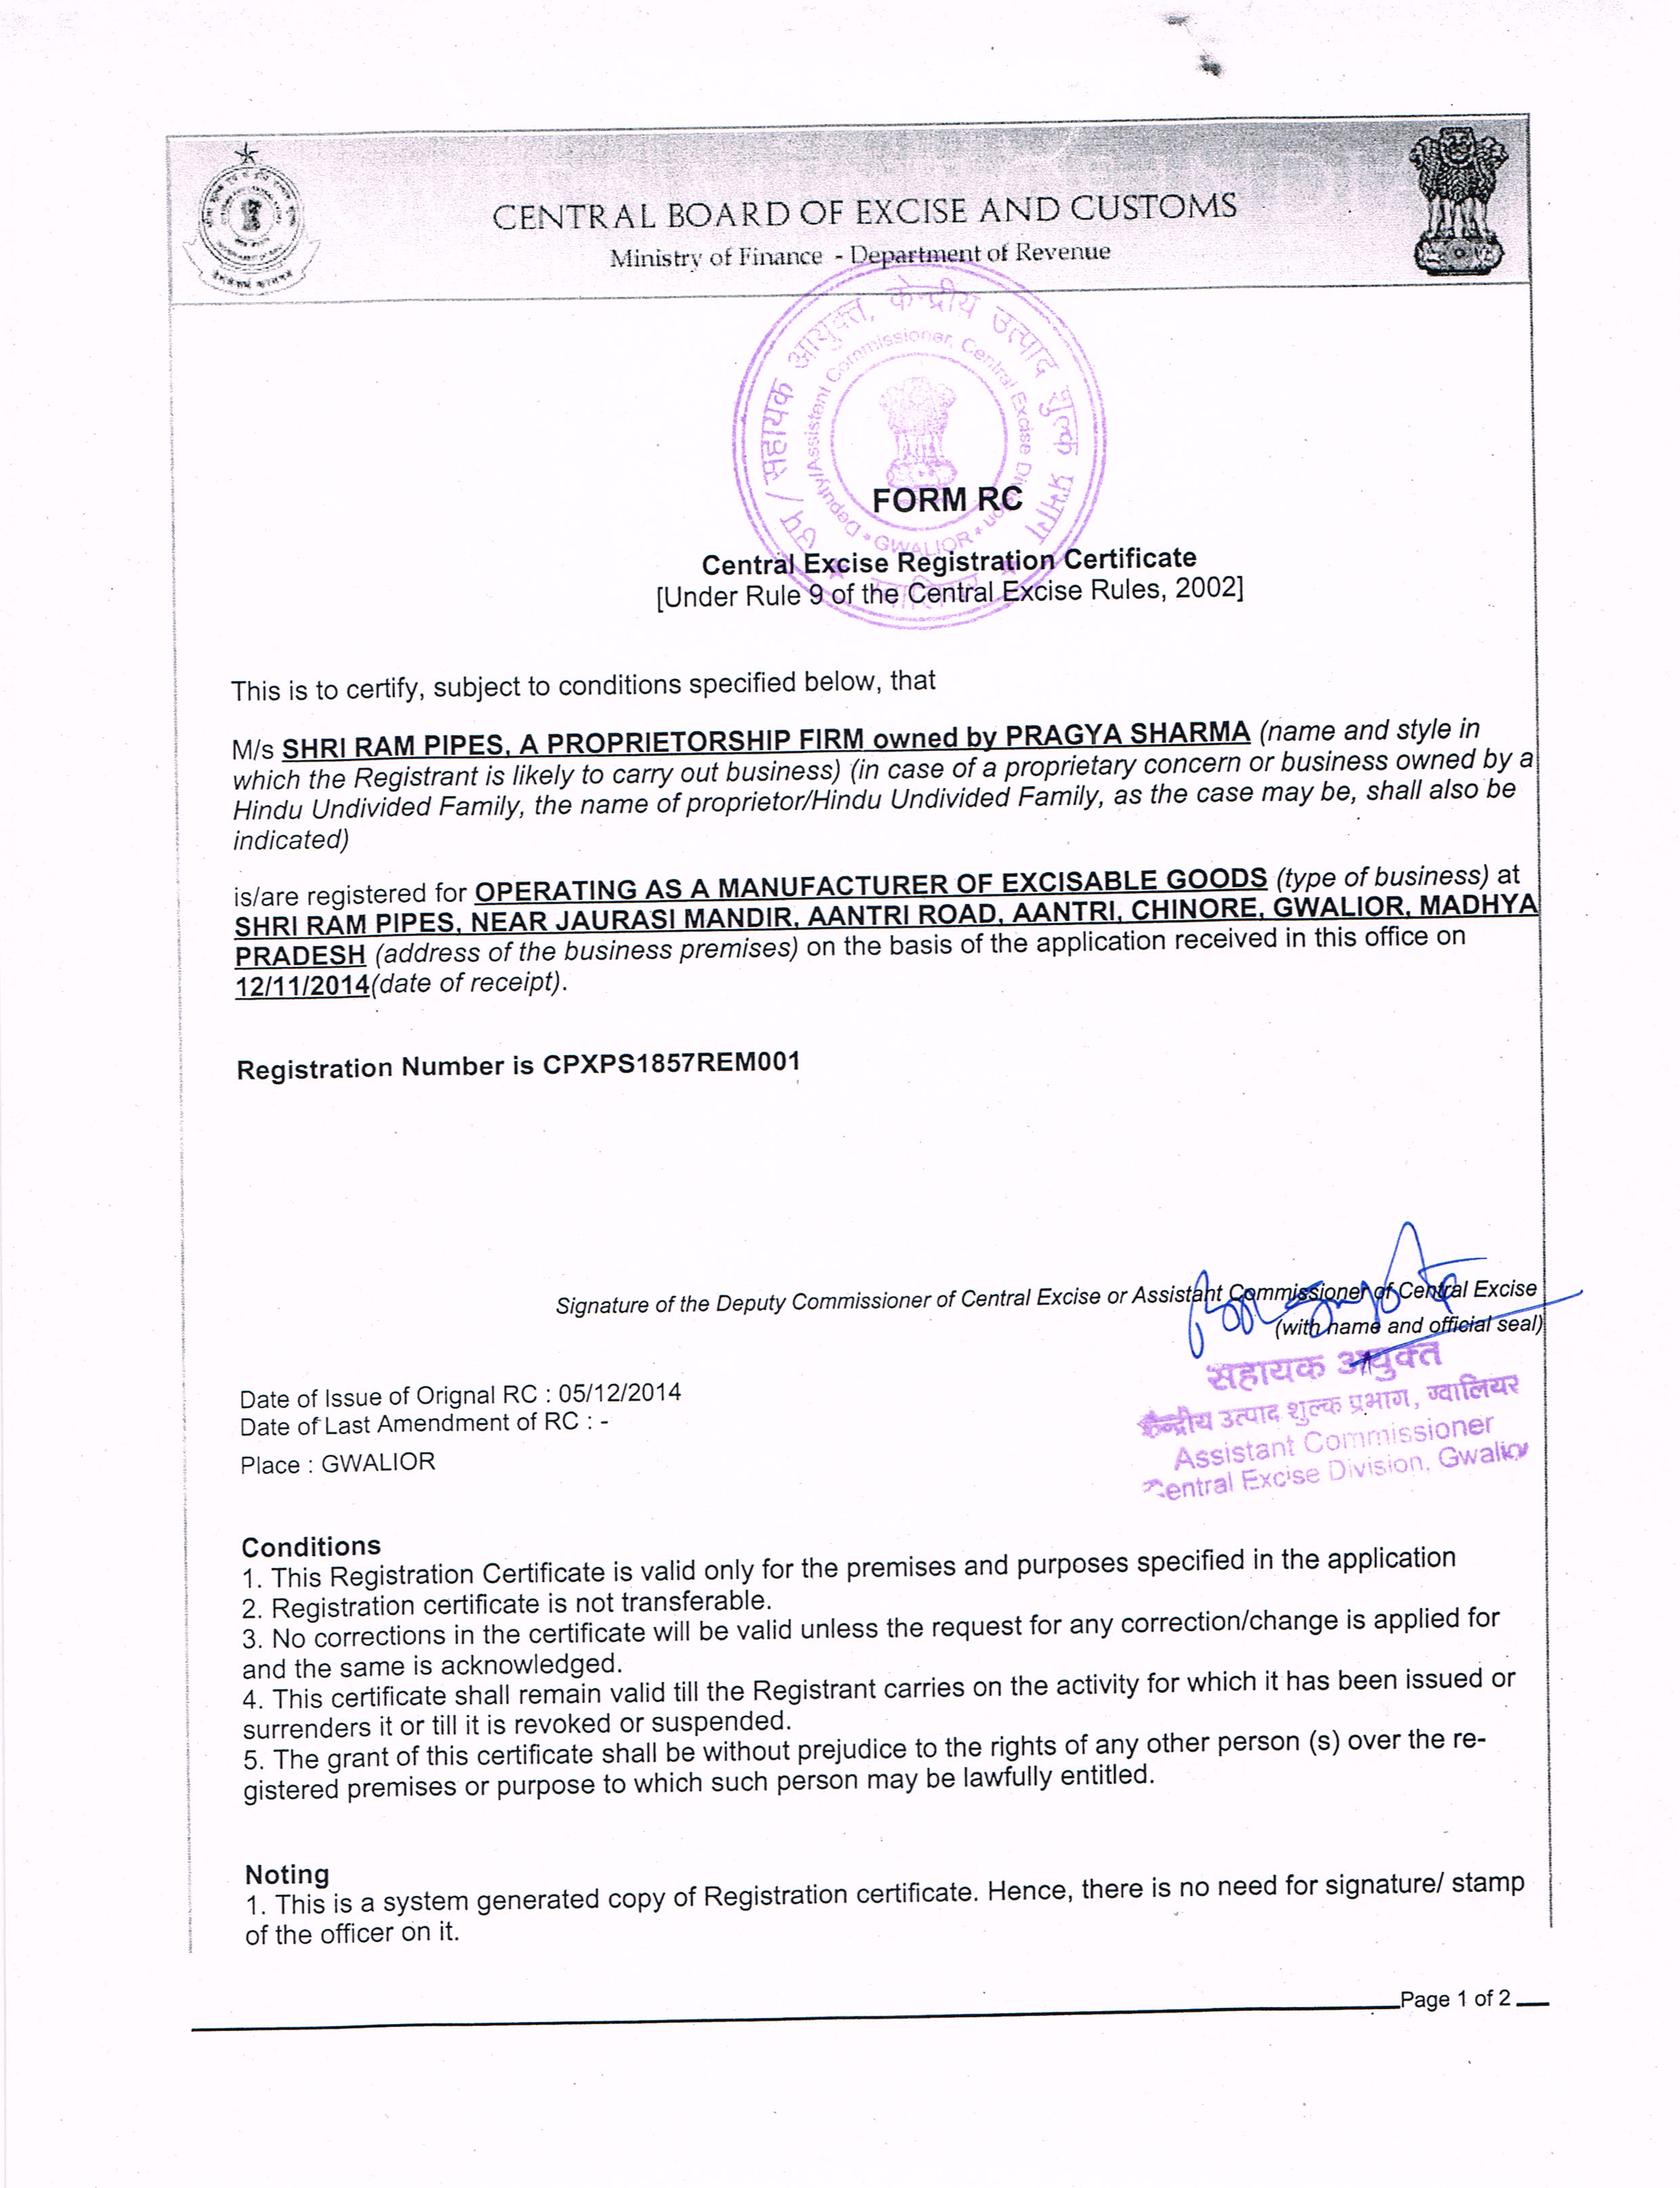 Central Excise Registration Certificate 01